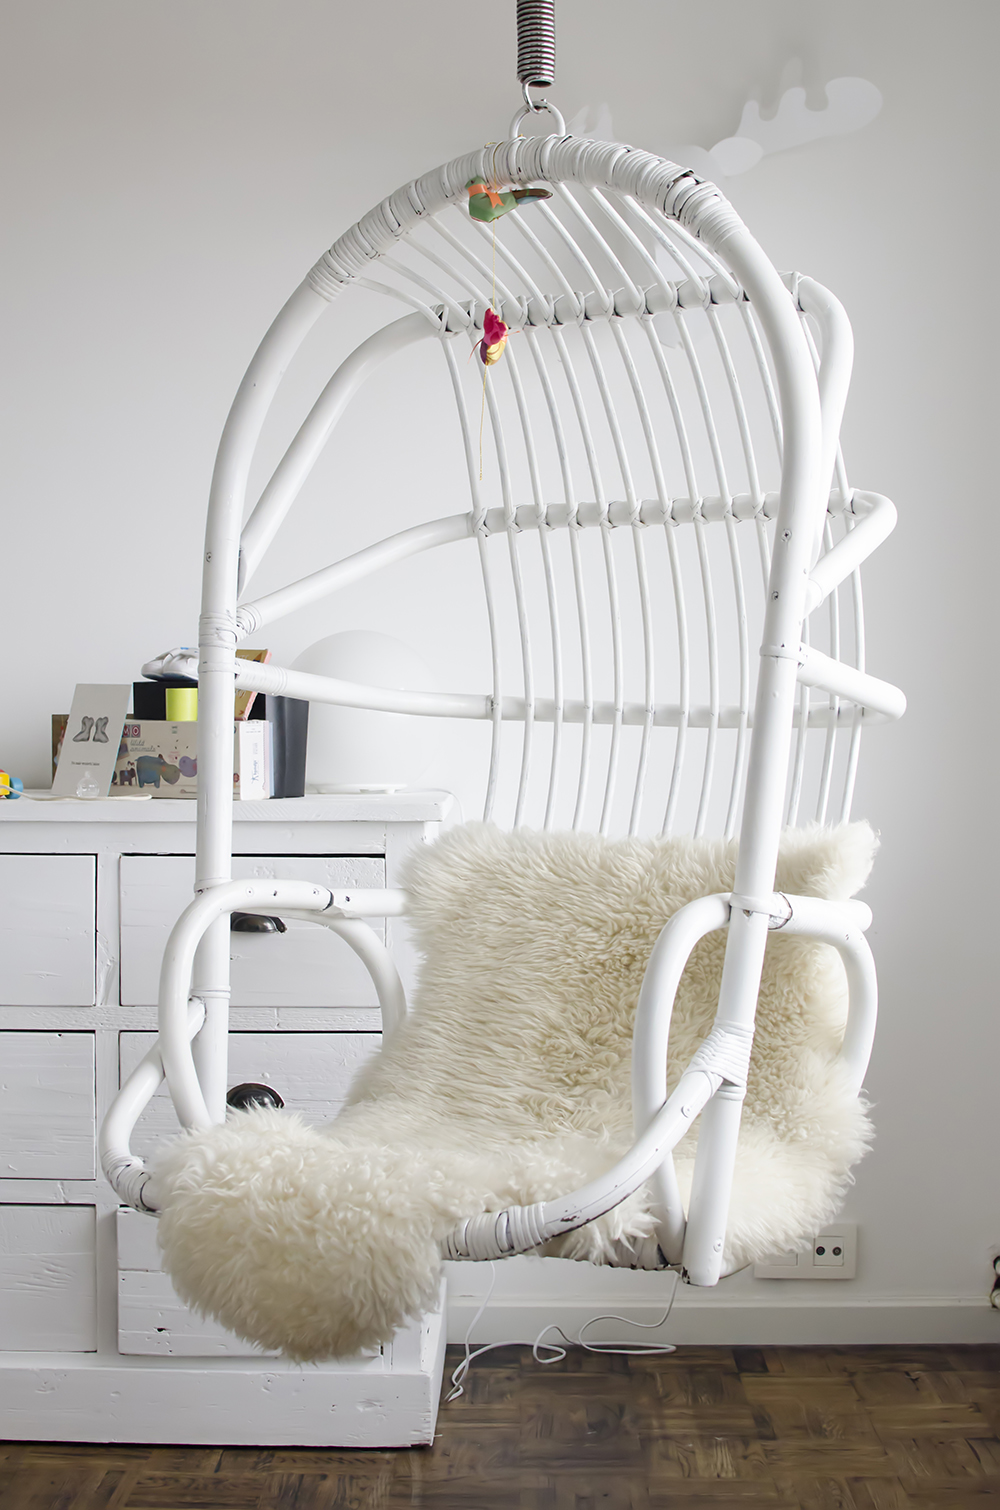 Young Creatives: Melanie Van Dooren //Inside the home and workplace of a Jewelry Designer // Rotan hanging chair